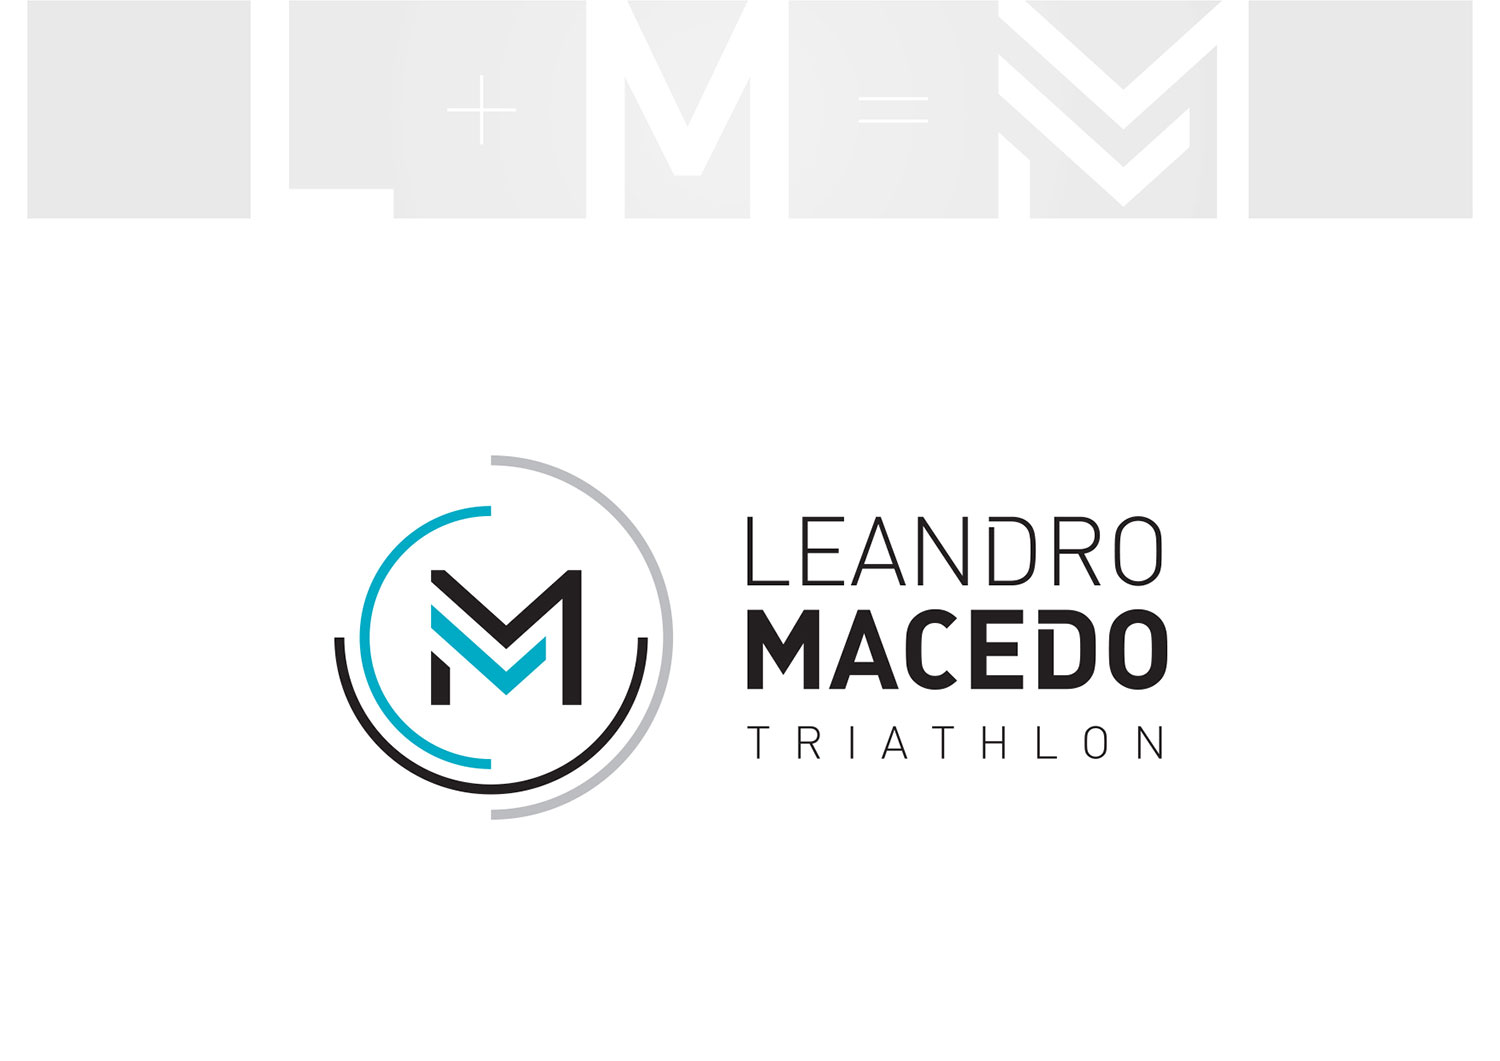 Leandro Macedo Triathlon